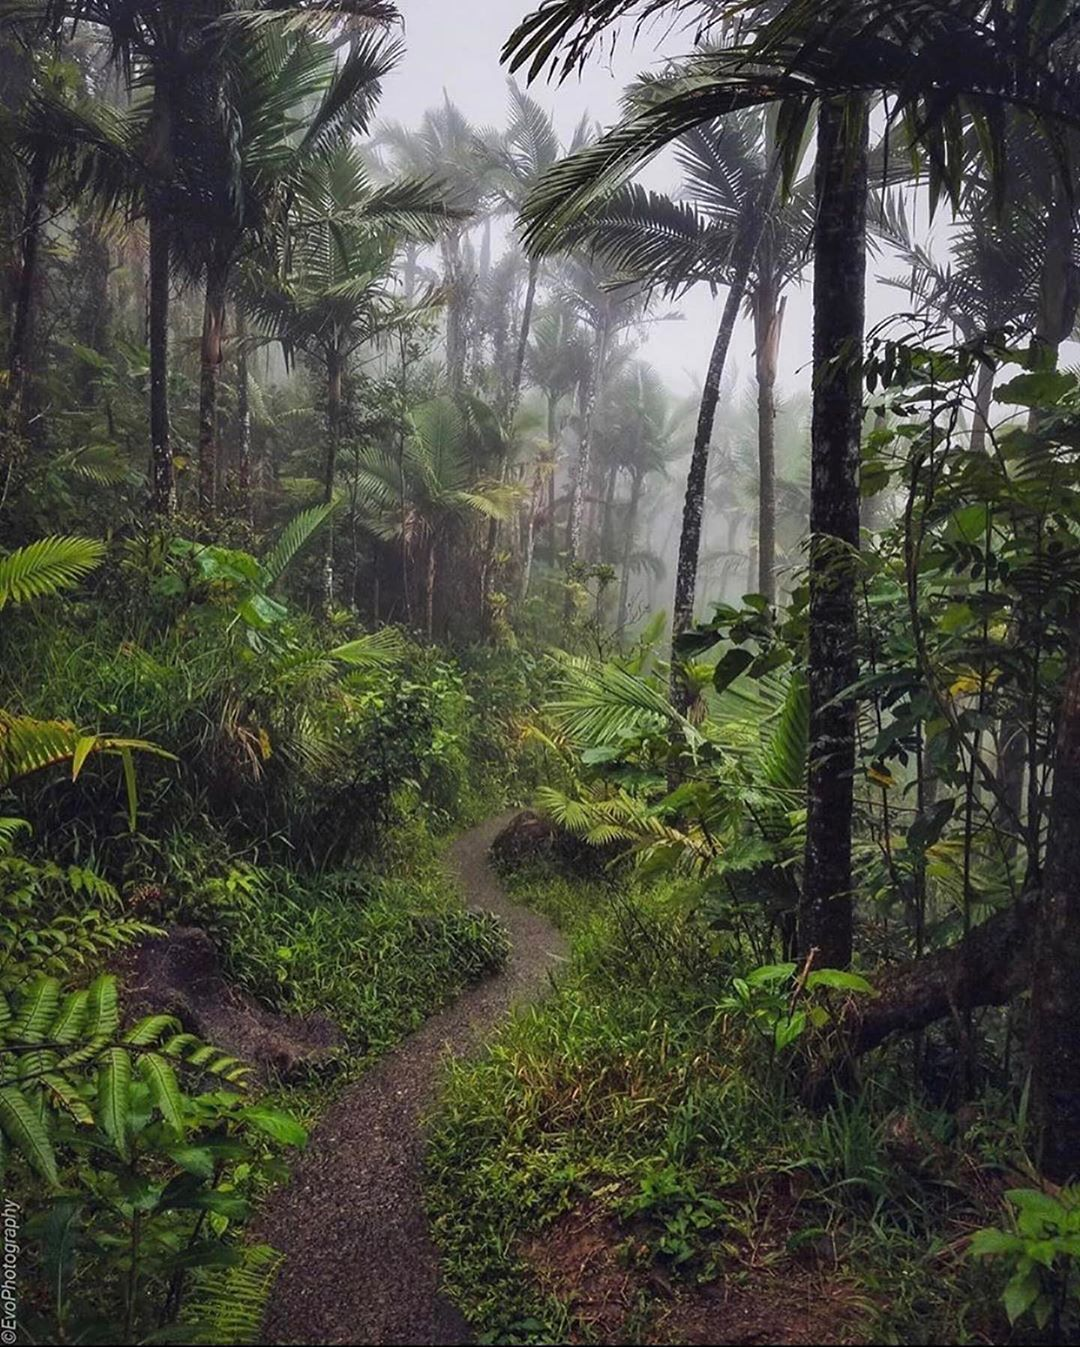 "@puertoricogram shared a photo on Instagram: ""EL YUNQUE 🍃 RIO GRANDE 📸: @evo_photography_pr . . #puertorico #puertoricogram #riogrande #prgriogrande"" • Sep 13, 2020 at 12:33am UTC"